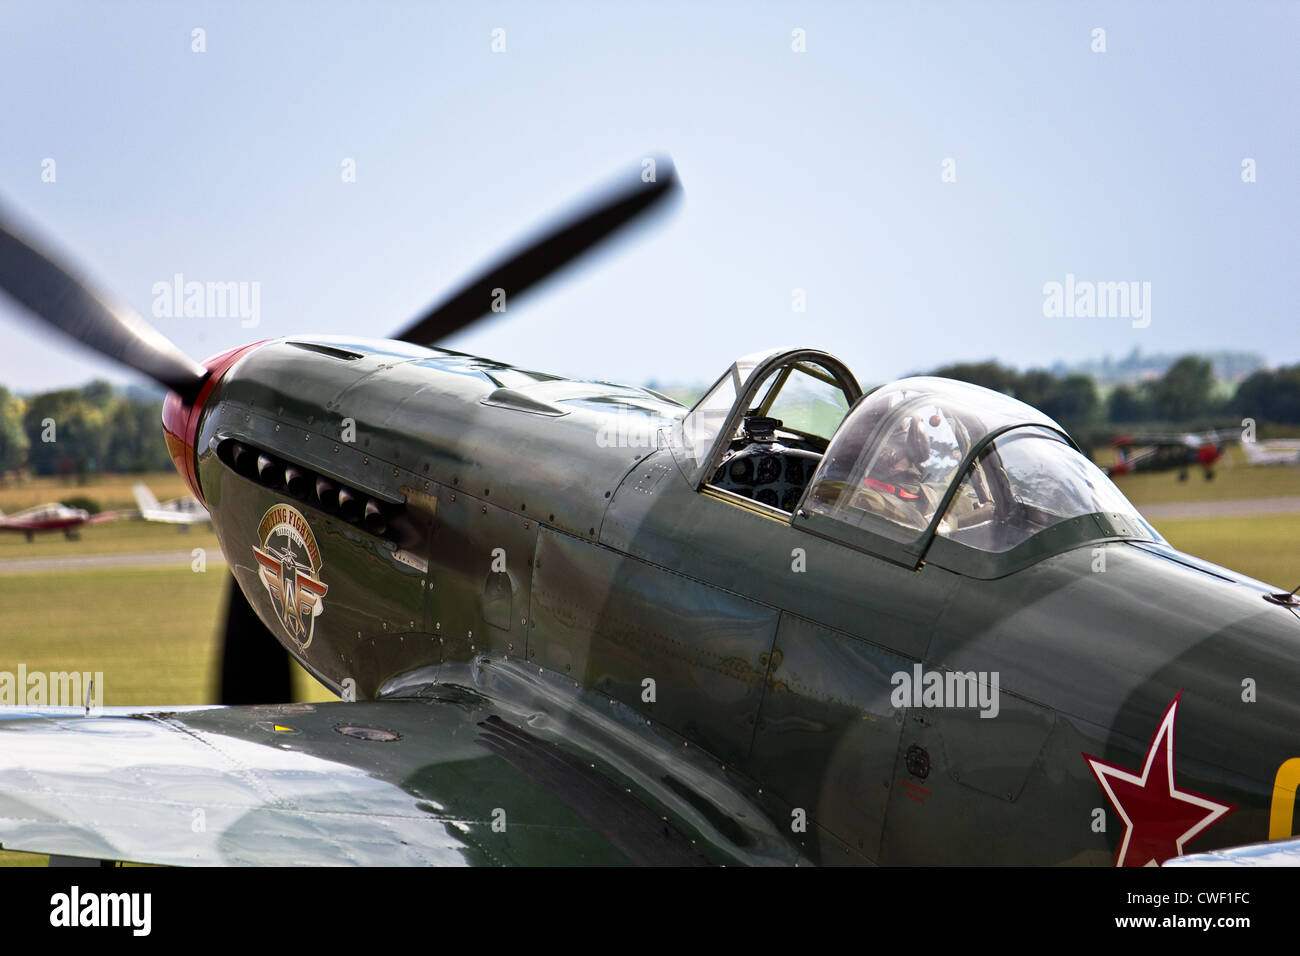 Yakalov Yak Fighter taxiing for takeoff - Stock Image